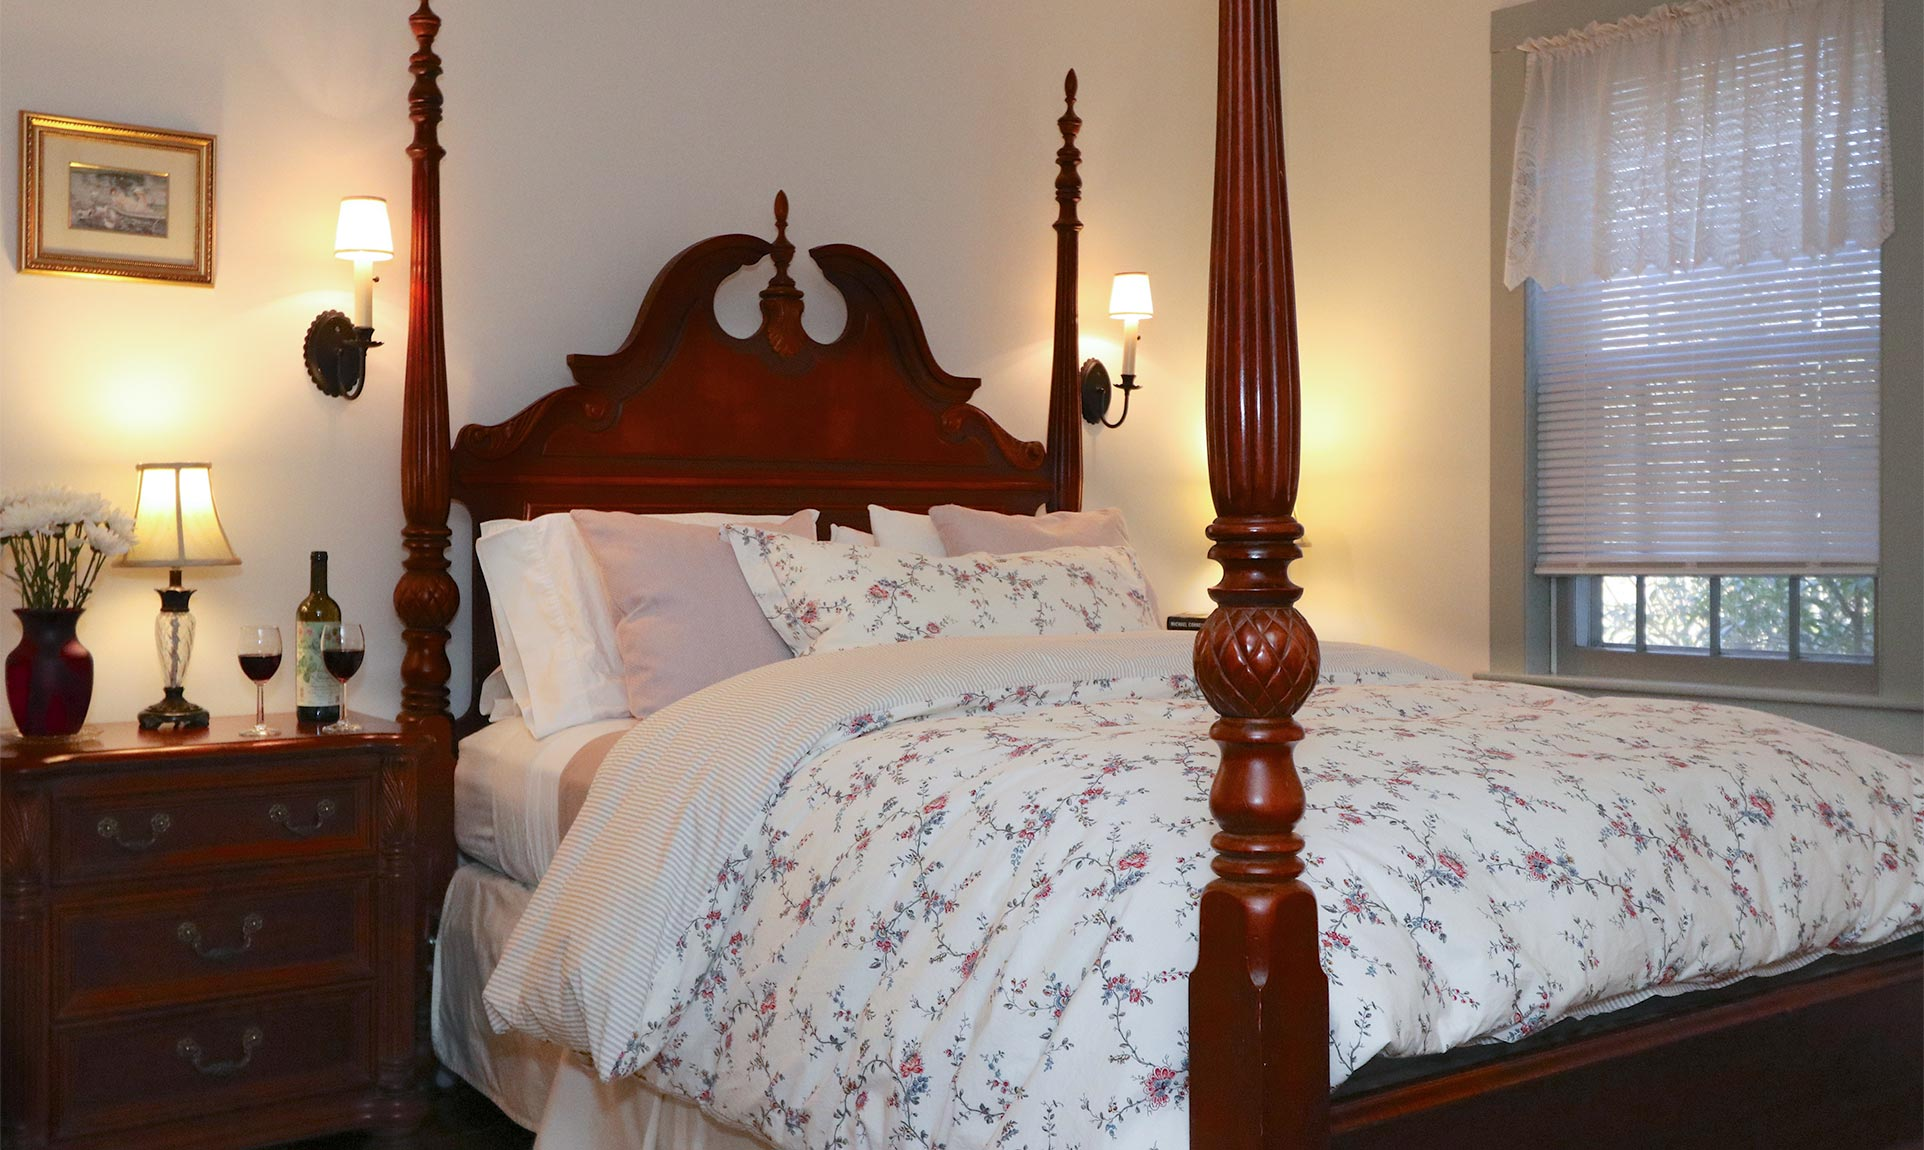 Four poster queen bed in a room with side tables and lamps